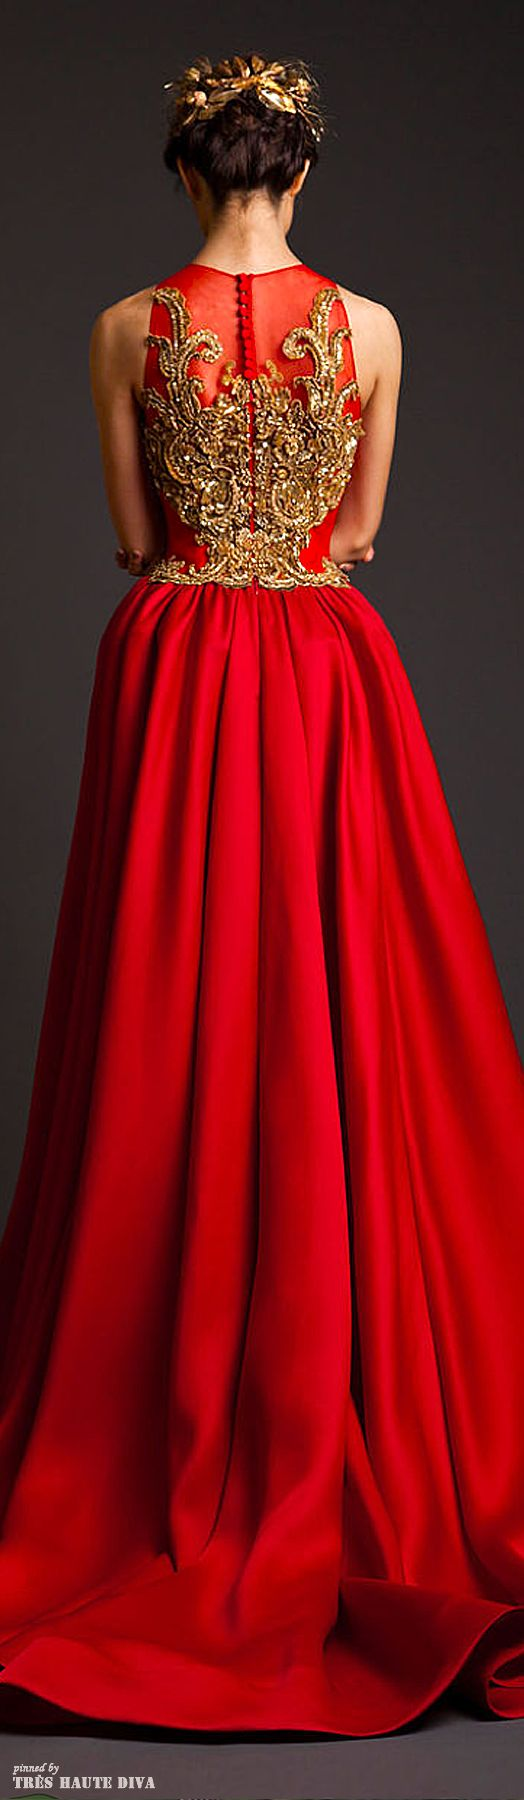 It's so classic and pretty, the golden detail is beautiful, and in fact red is one of my favorite colors~